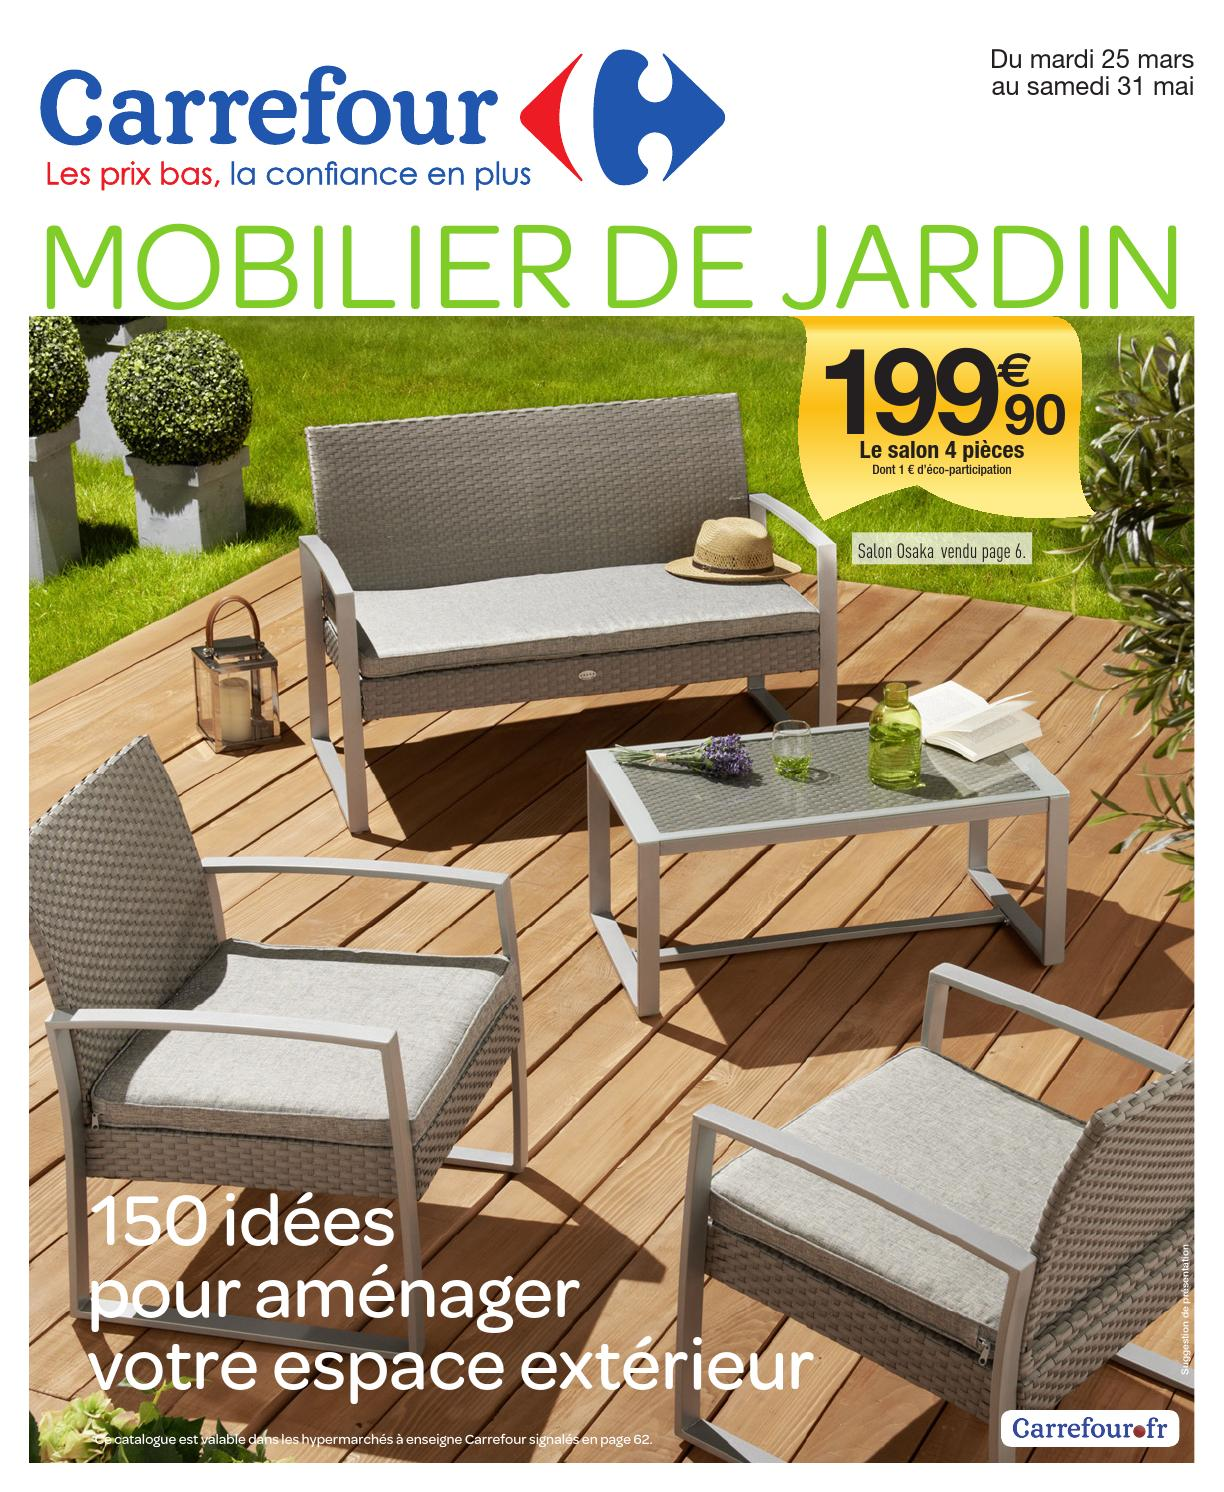 Best Fauteuil Salon De Jardin Pliable Images - Design Trends 2017 ...